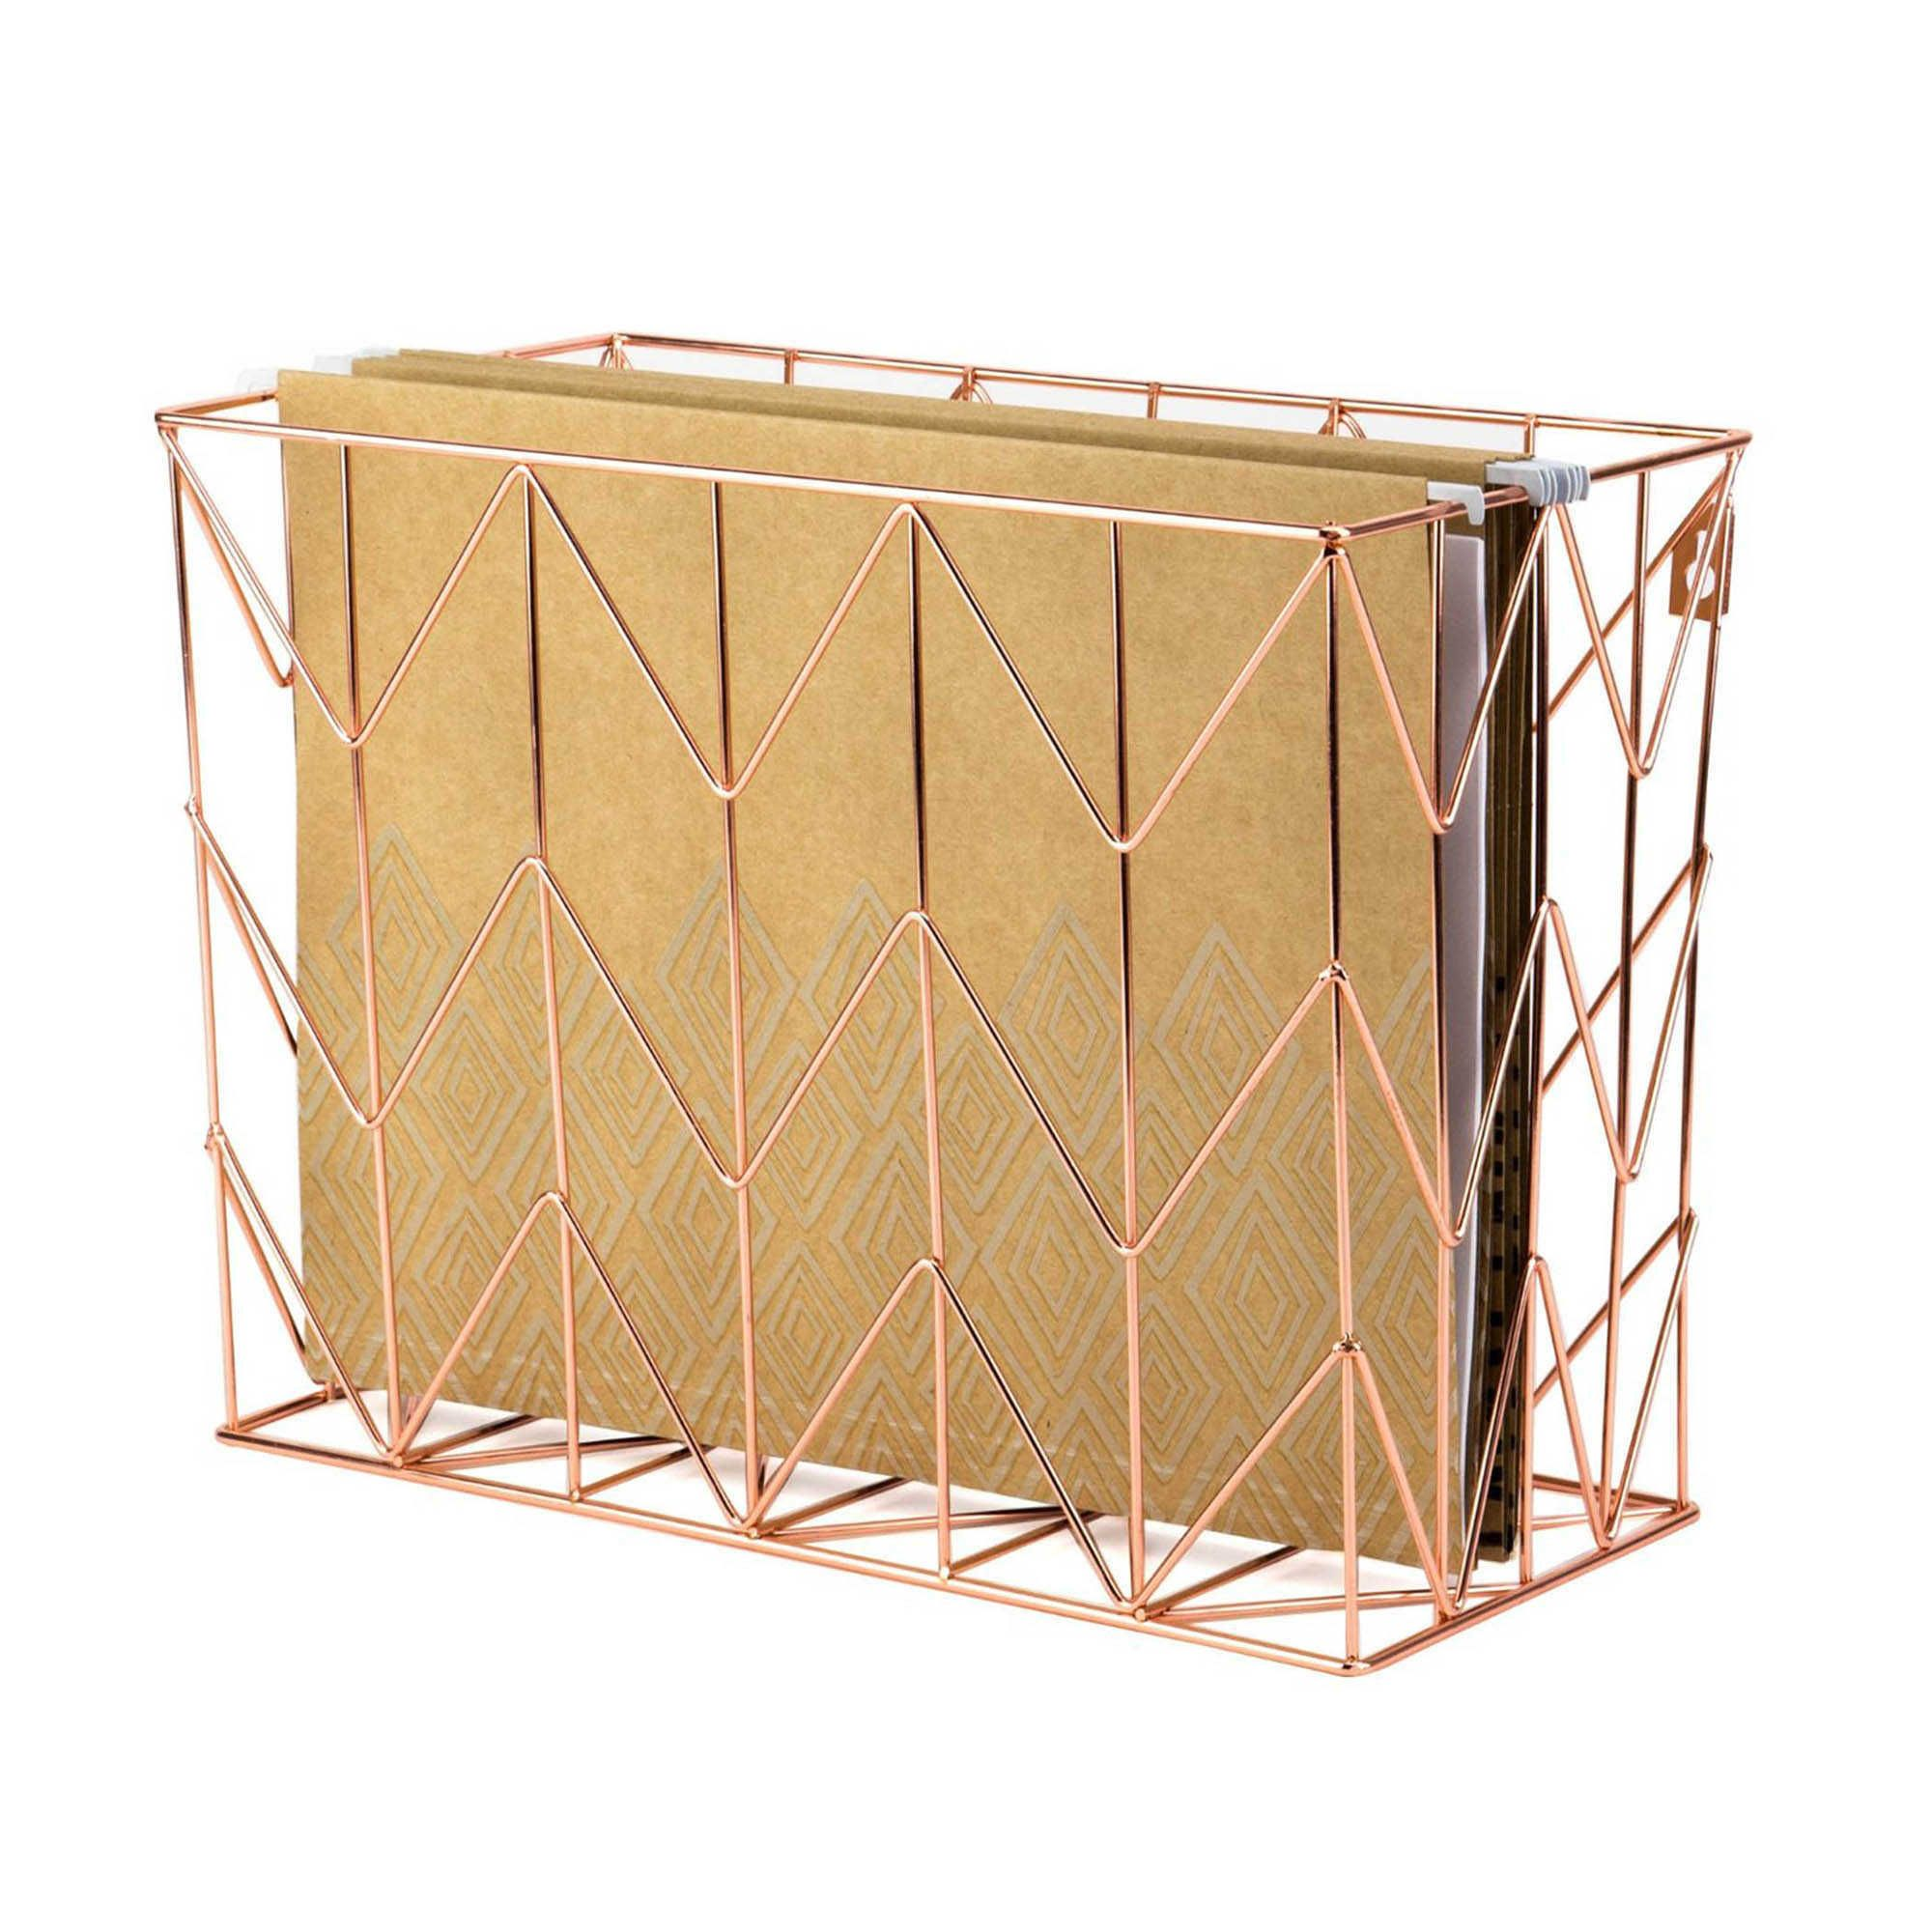 Copper Wire Hanging File Basket Hanging Files Desk Organization - Schreibtisch Organizer Gold